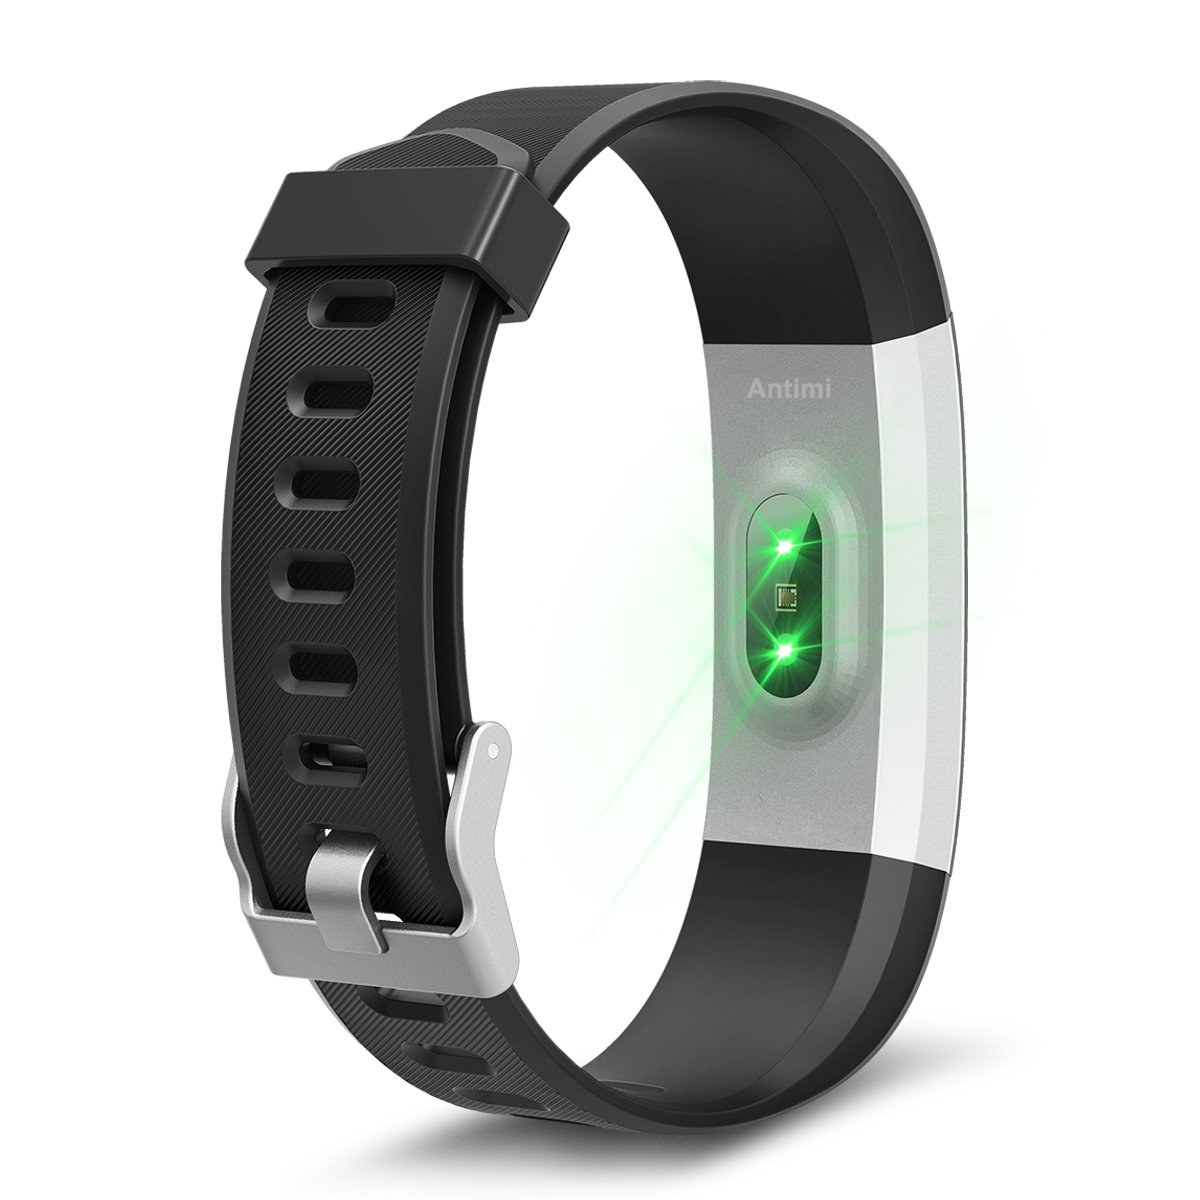 Antimi Fitness Tracker Heart Rate Monitor Activity Tracker Smart Bracelet Bluetooth Pedometer Smartwatch For IPhone X 8 8 Plus Samsung S8 And Other Android Or IOS SmartphonesBlack